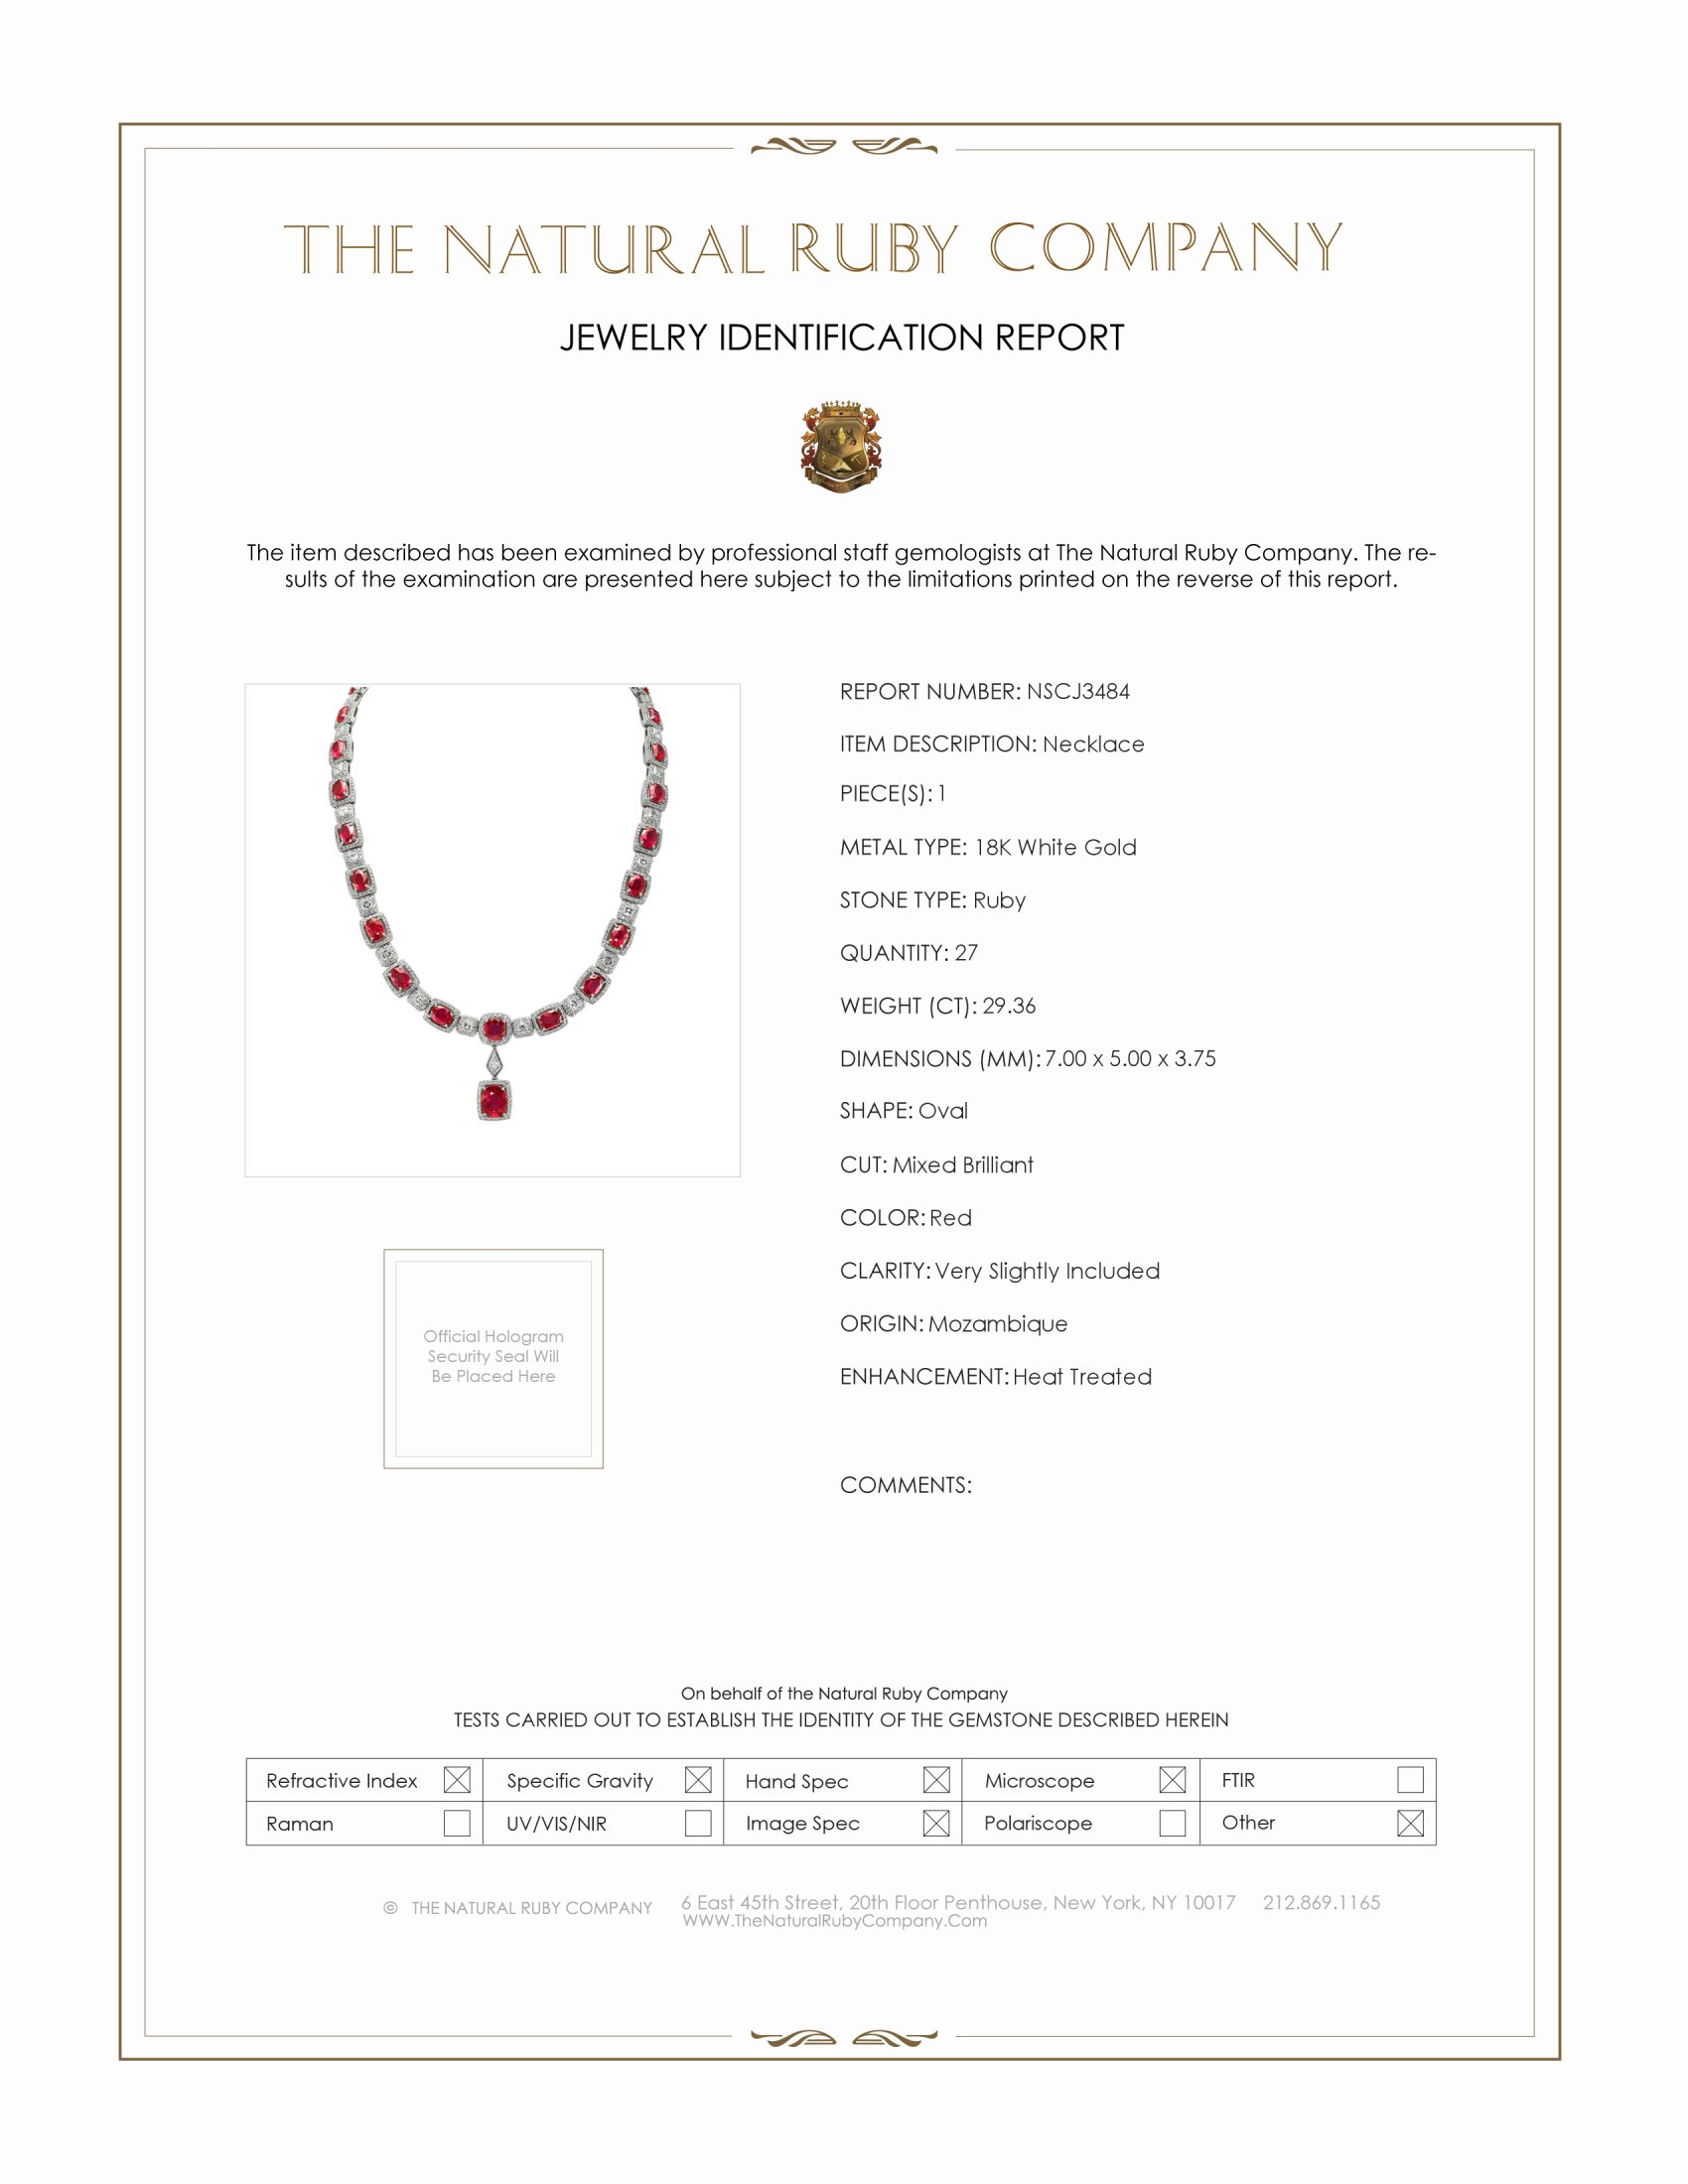 29.36ct Ruby Necklace Certification